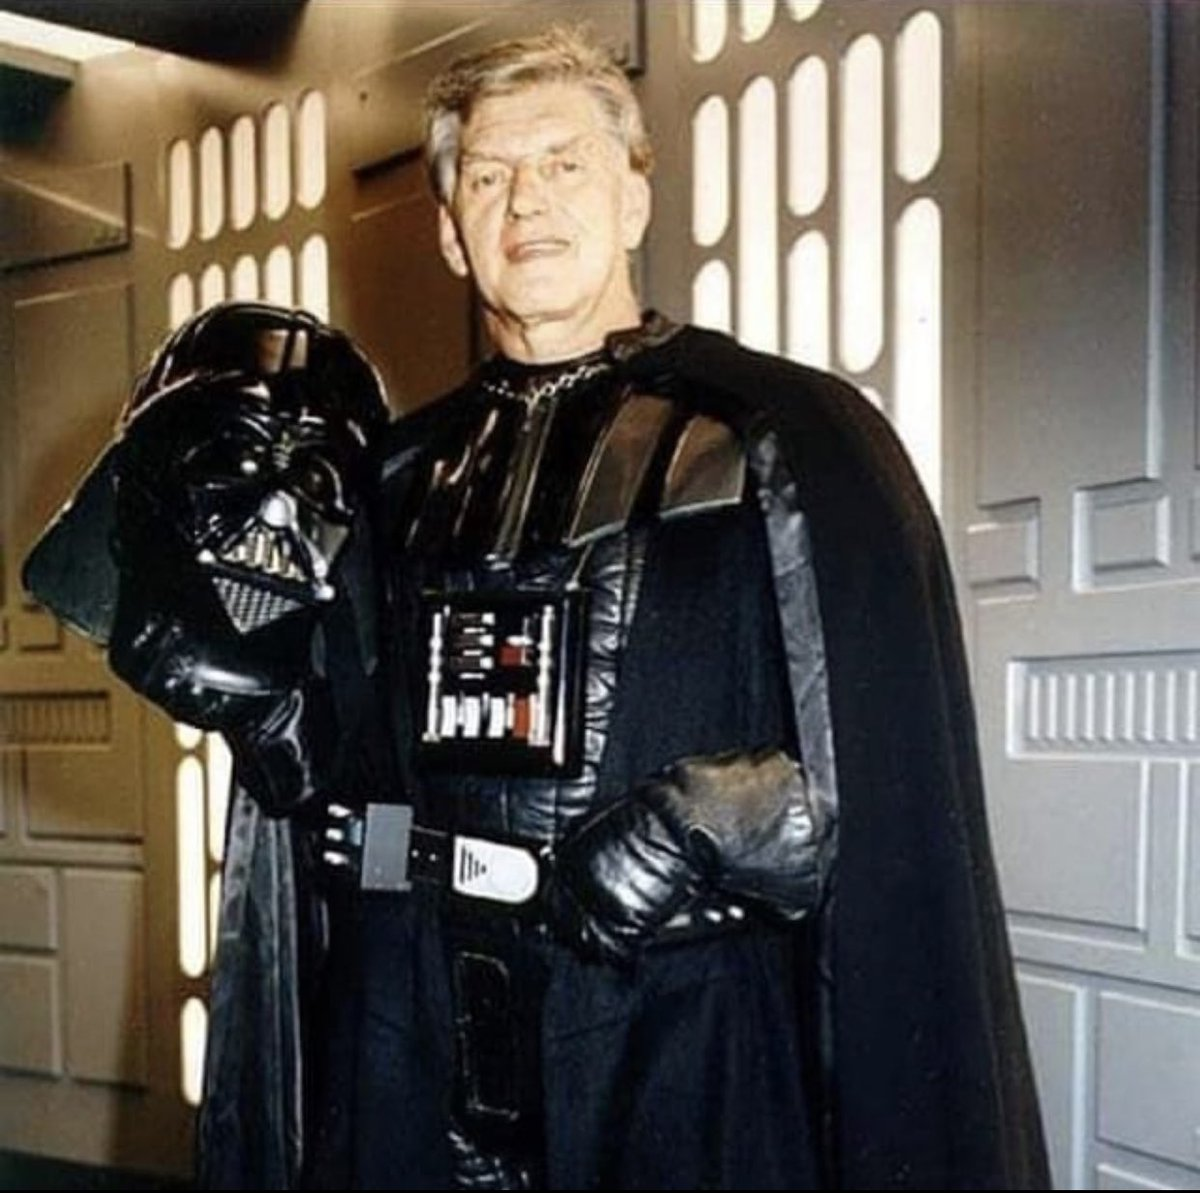 Happy belated birthday to David Prowse, the man beneath the suit! Darth Vader himself. Prowse was a bodybuilder in his hobby time, that's why Vader's physique is so strong and broad. You can literally see Vader's biceps stretching the suit. July 1st 1935 (85 today) @isDARTHVADER<br>http://pic.twitter.com/nbLK8Zvi96